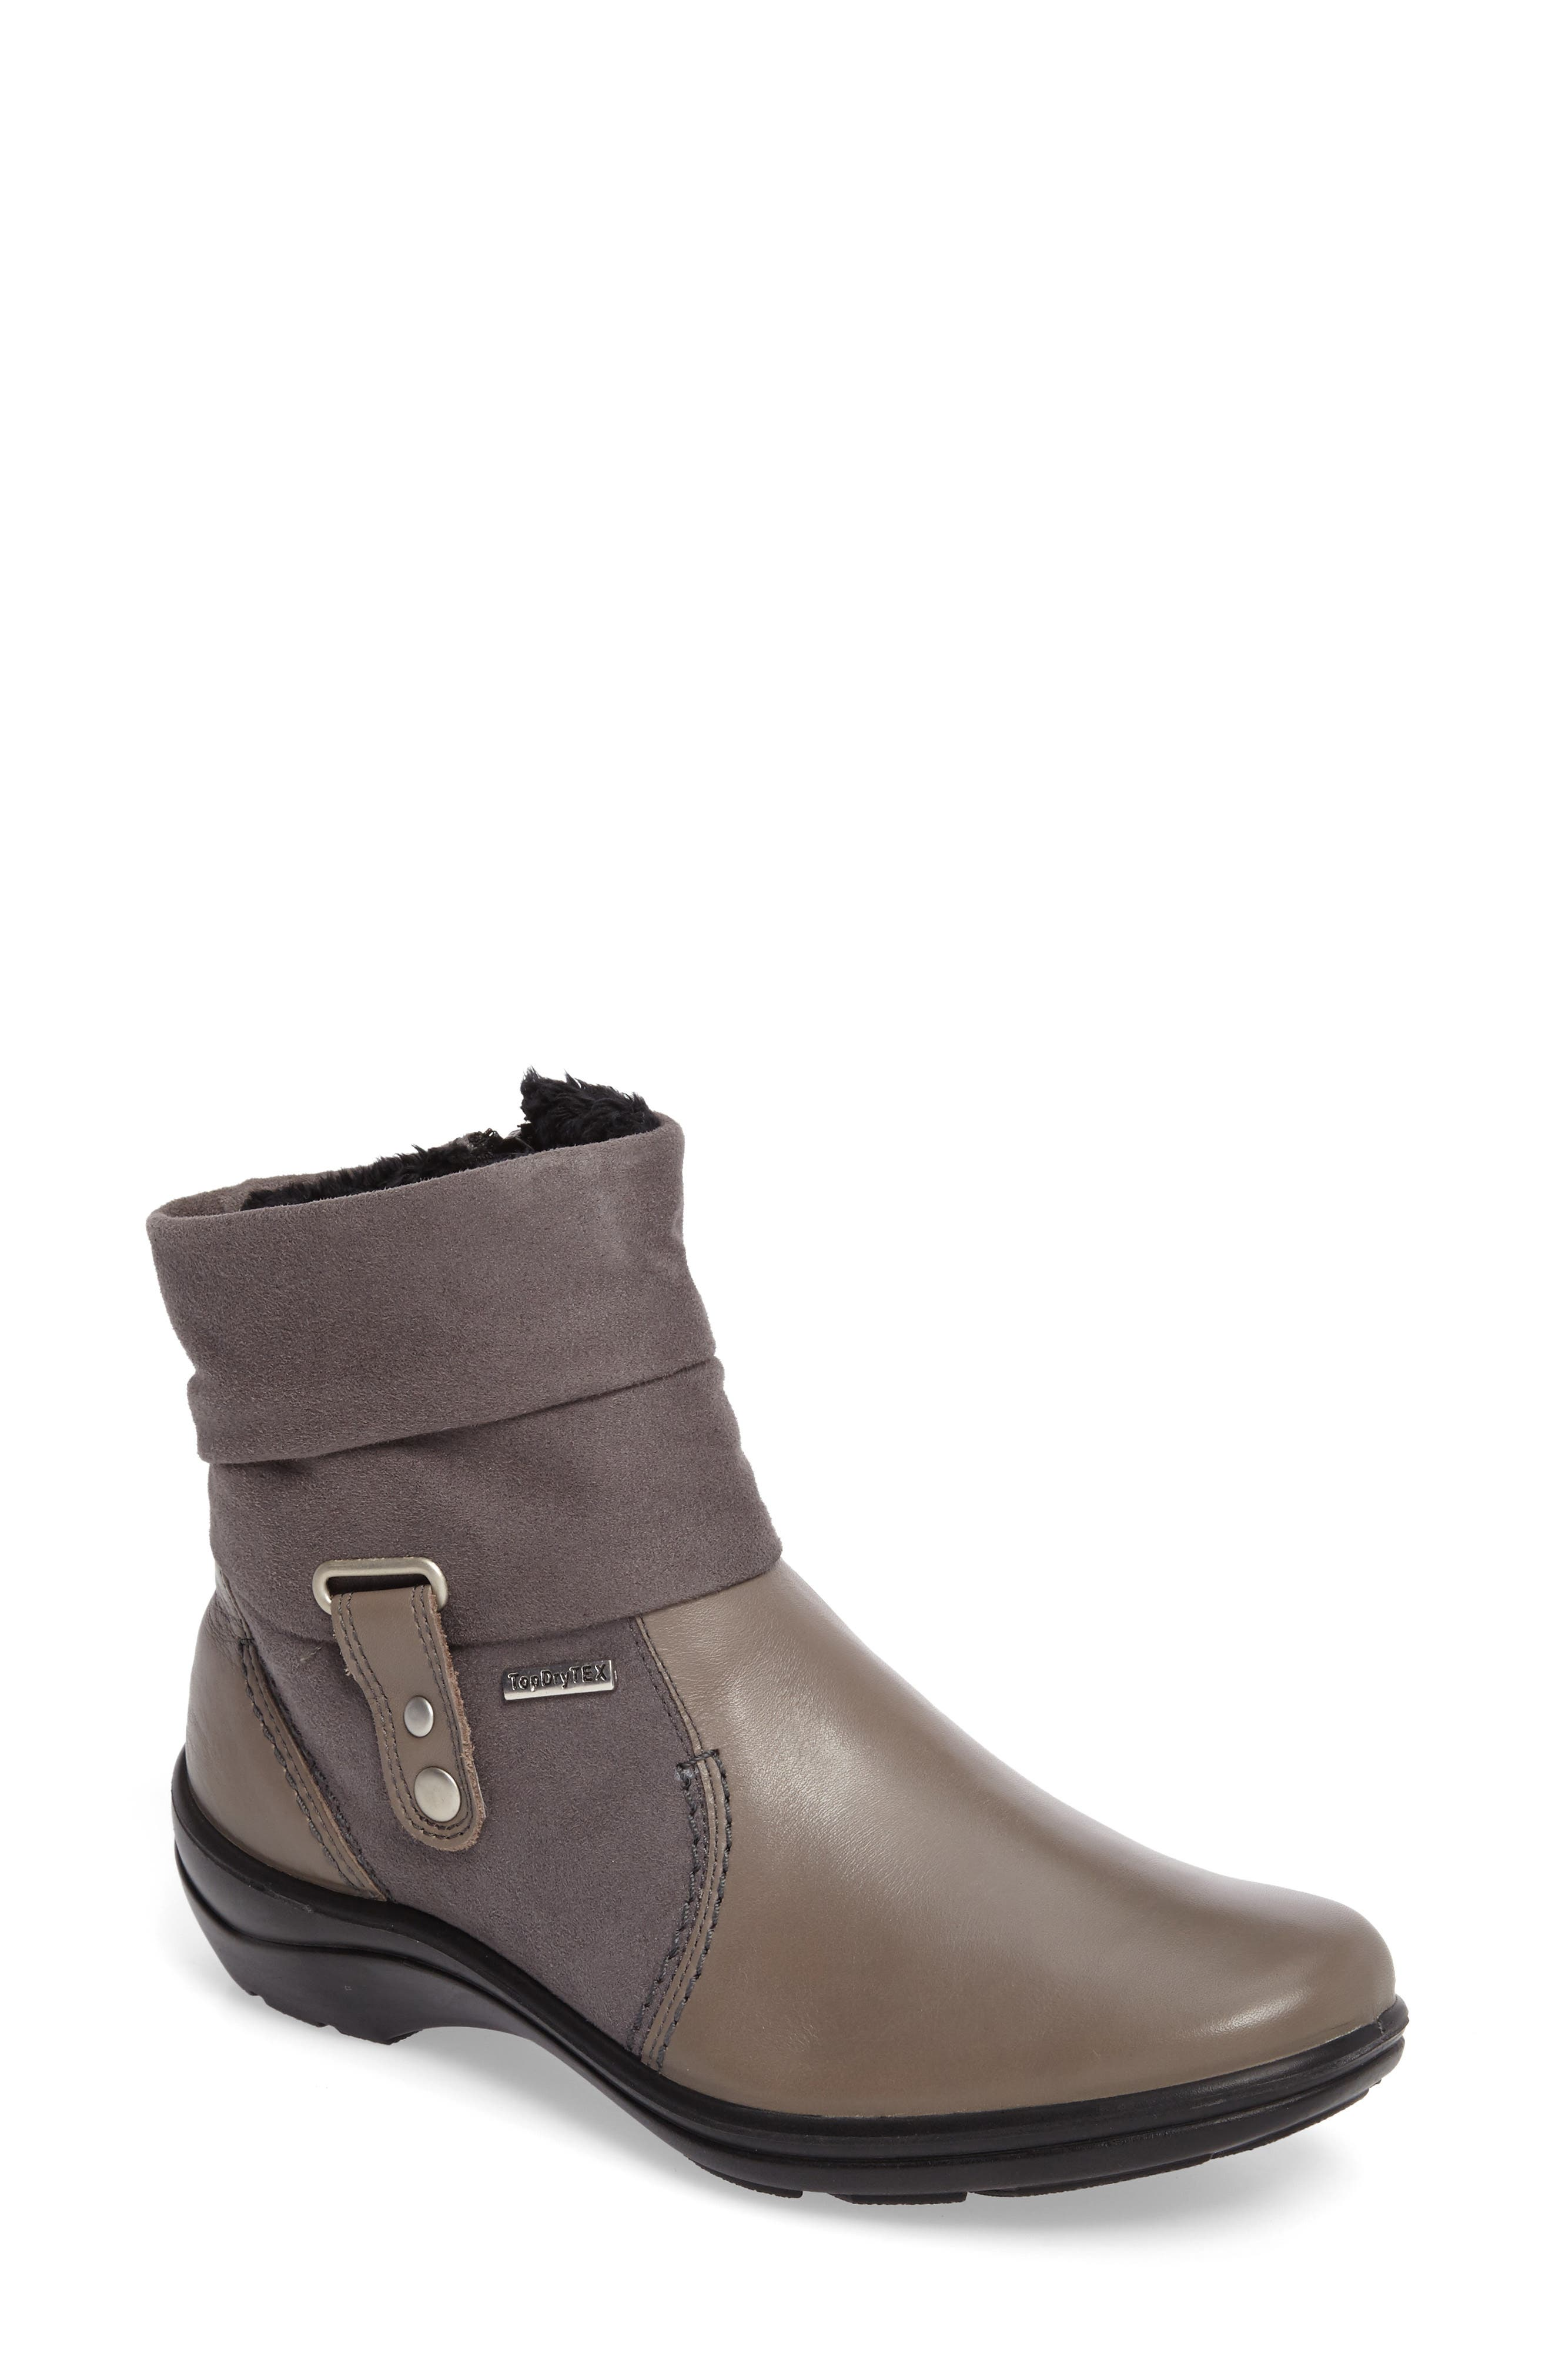 'Cassie 12' Boot,                         Main,                         color, 053